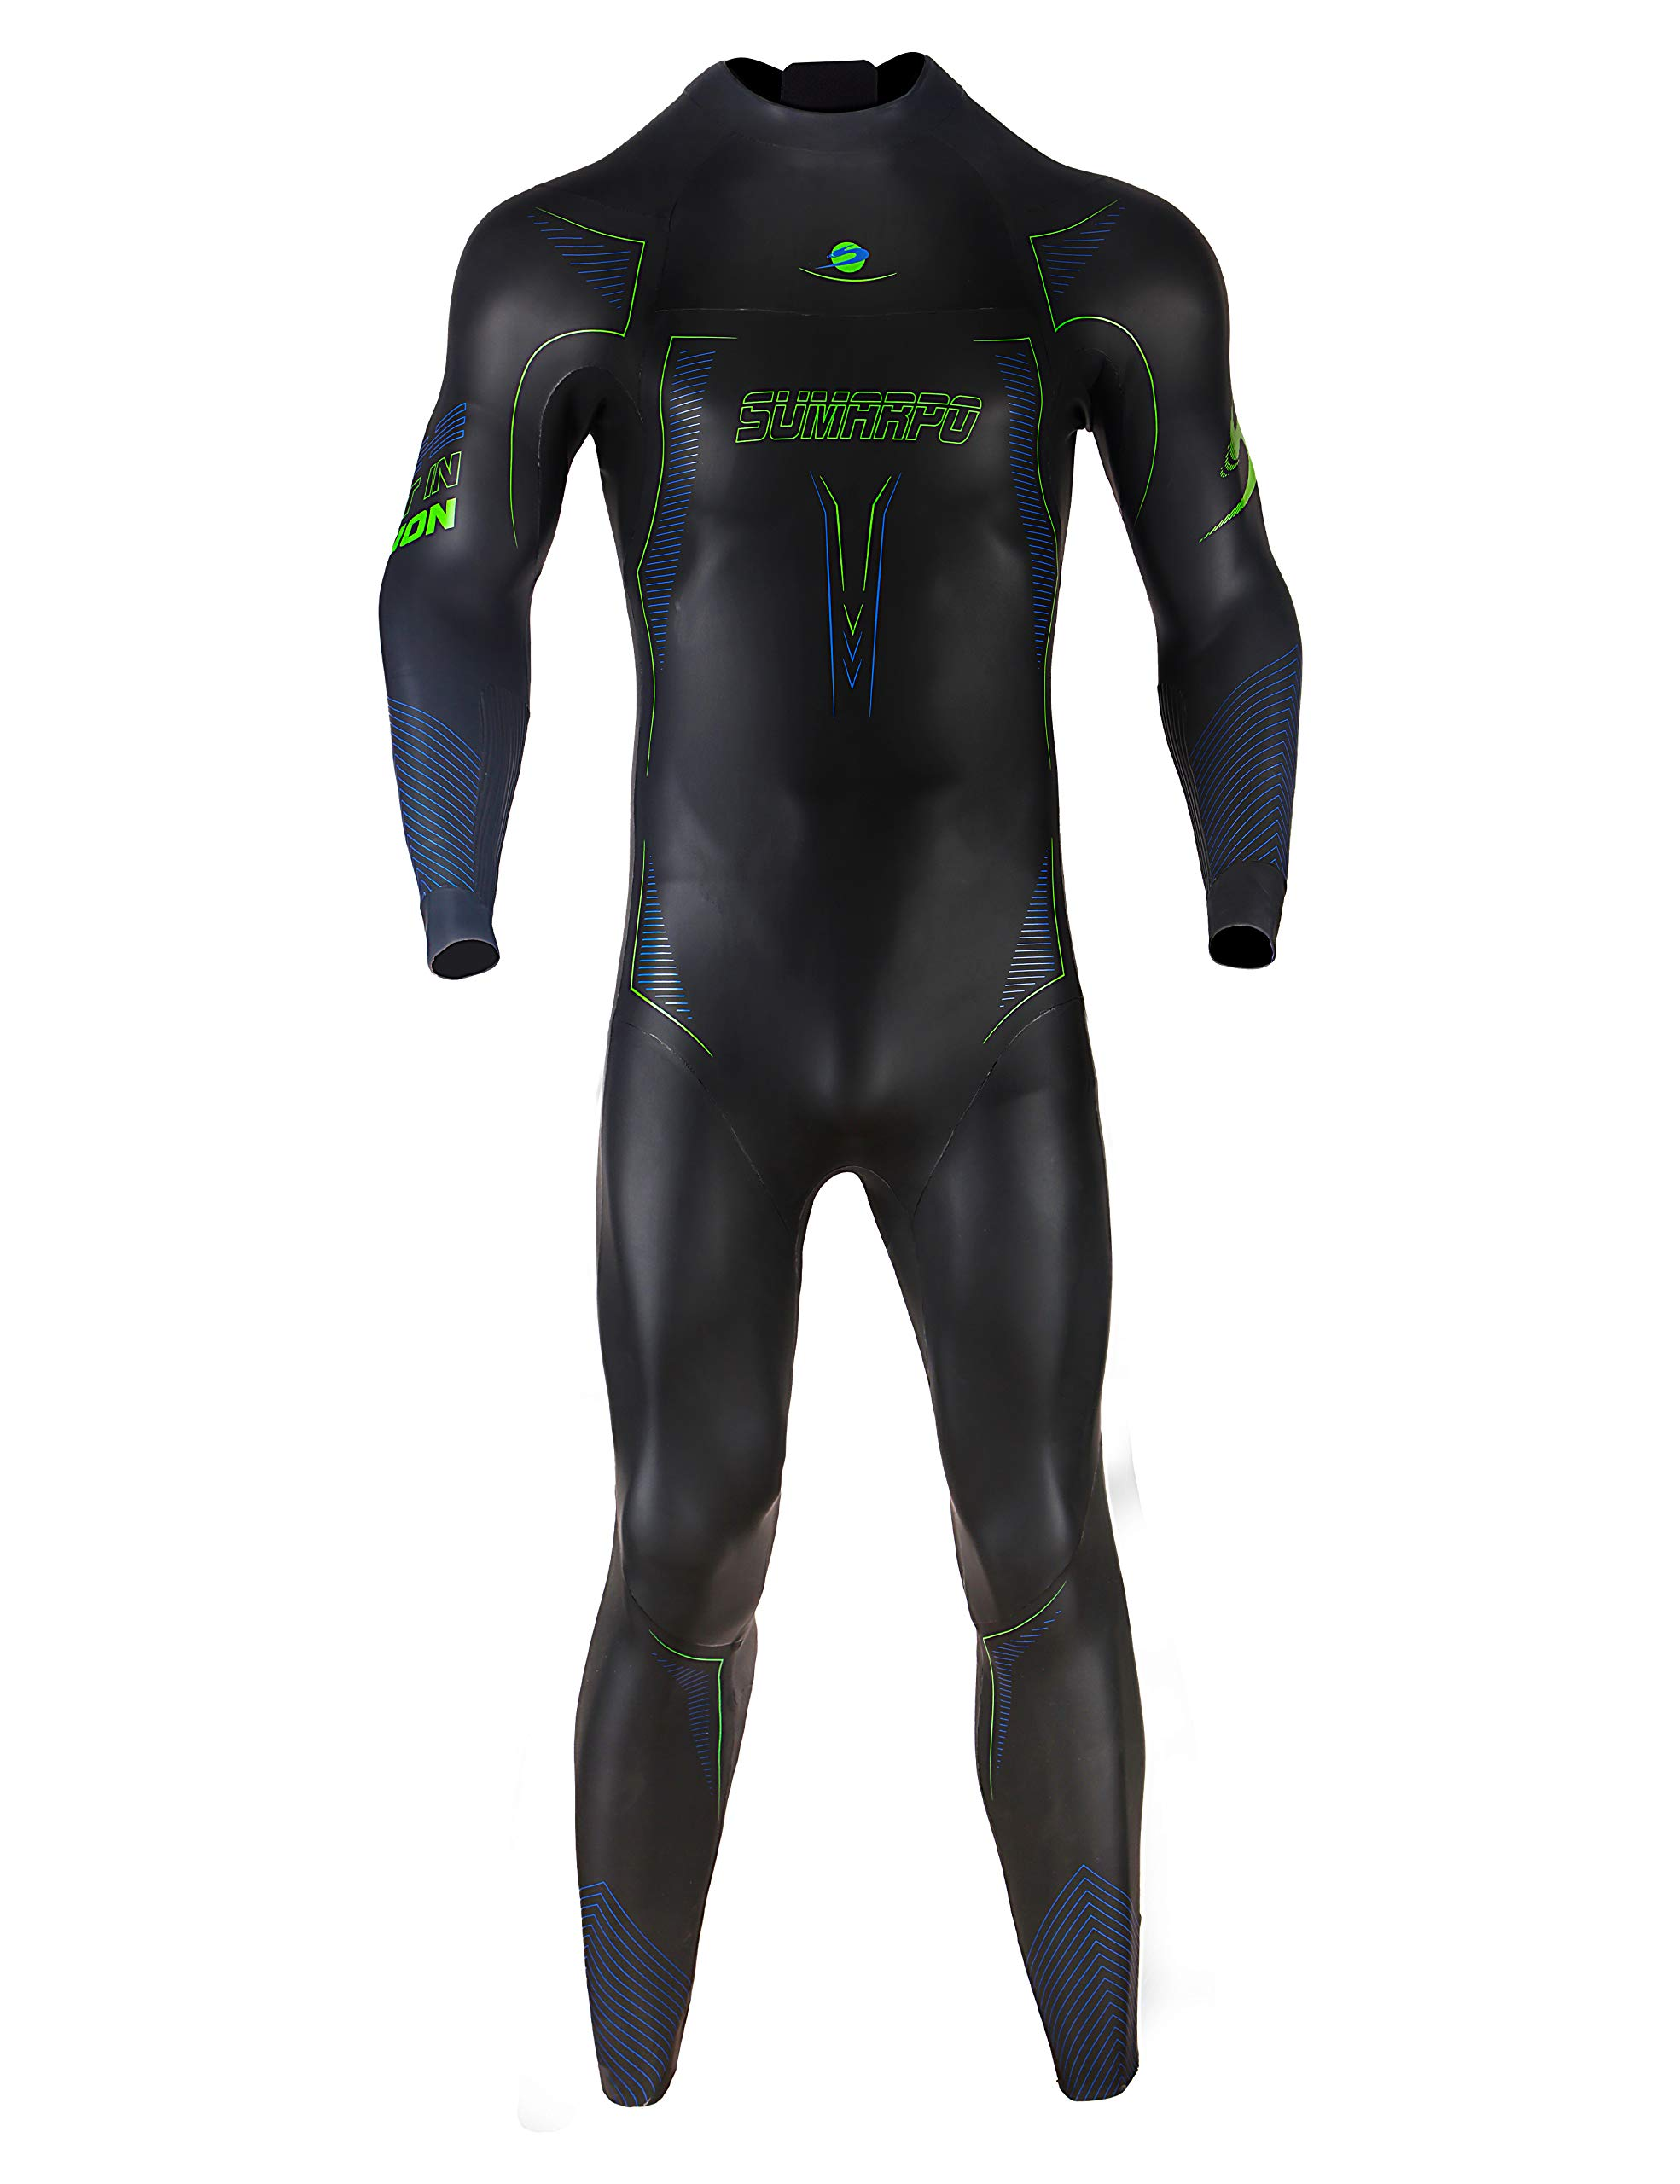 SUMARPO Triathlon Wetsuit Men N-Joy Full Body Dry Suits Yamamoto Smoothskin Neoprene Ironman Suit for Open Water Swimming